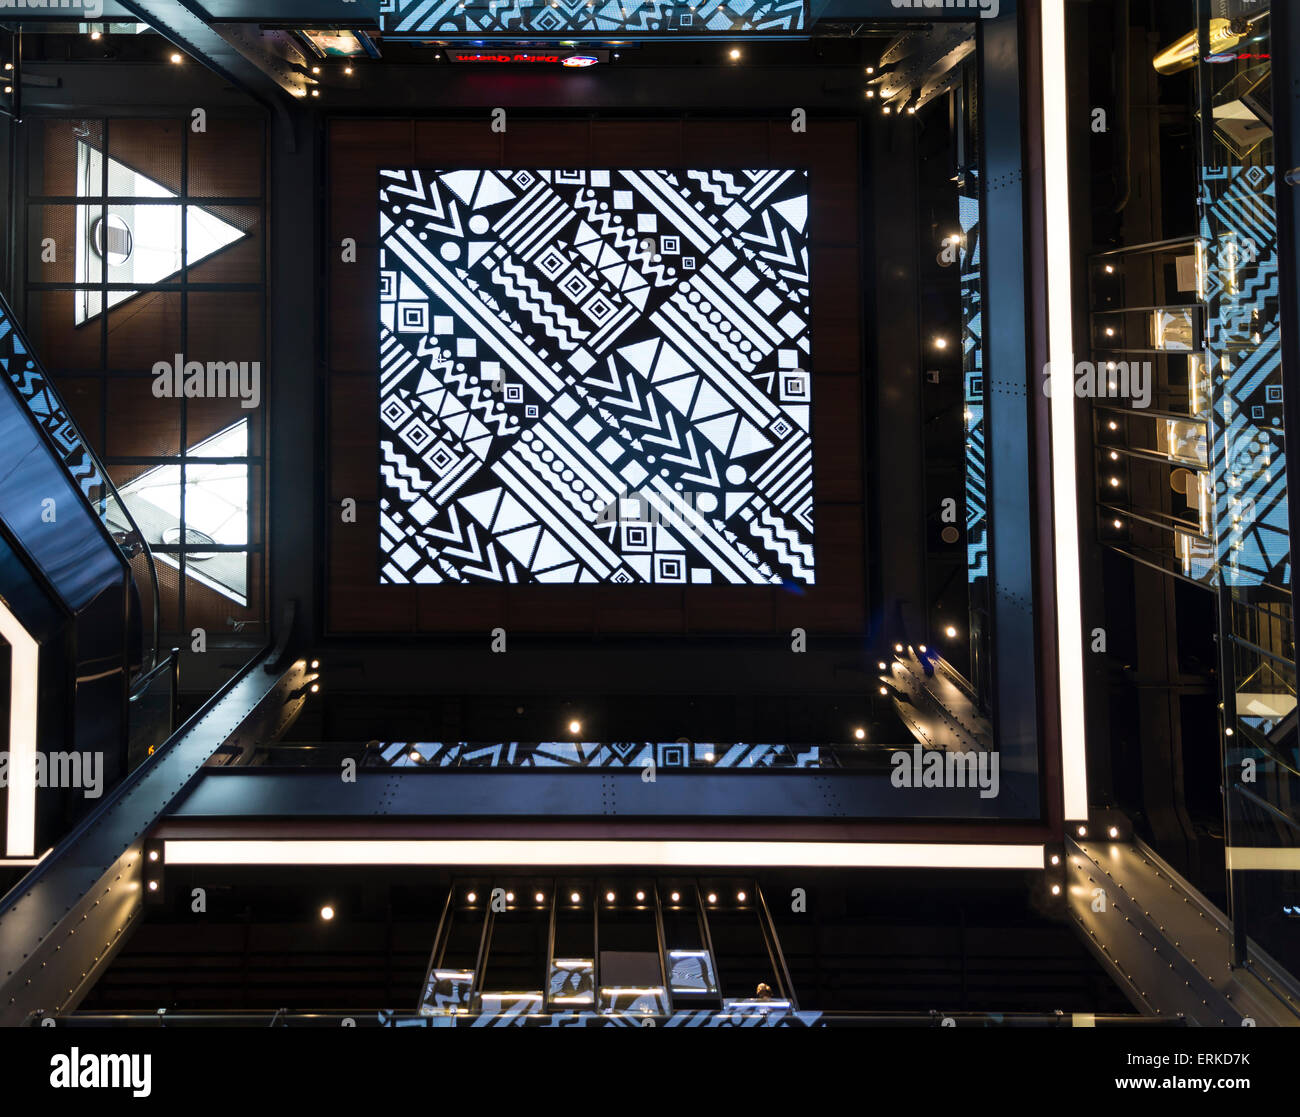 Decorative ceiling in the Siam Center, modern shopping mall, Siam Square, Bangkok, Thailand - Stock Image